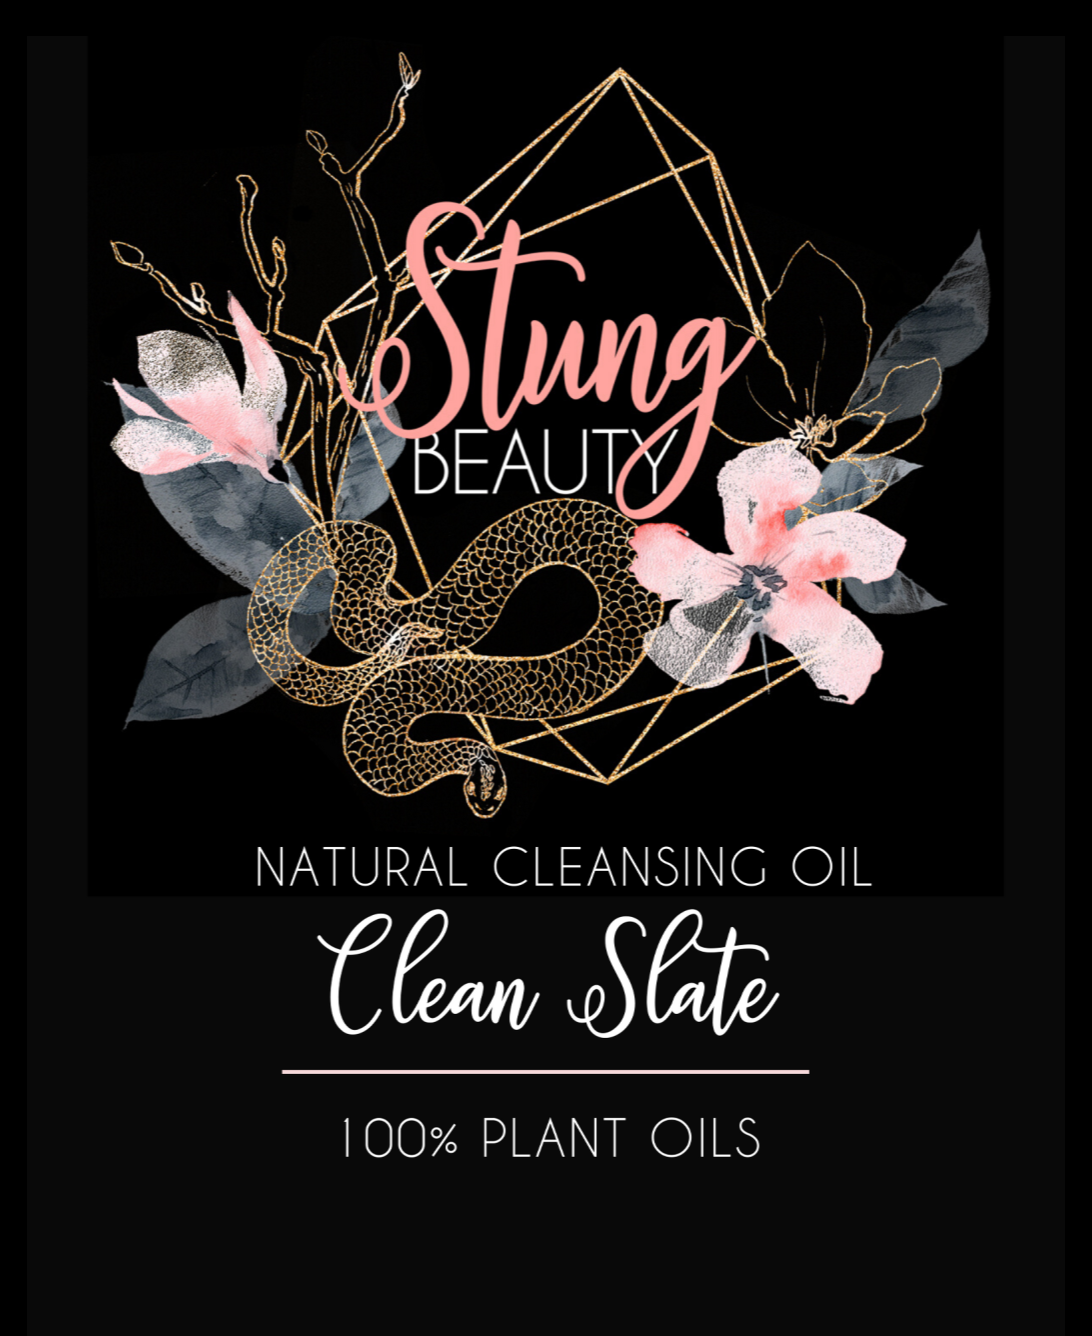 Clean Slate Cleansing Oil